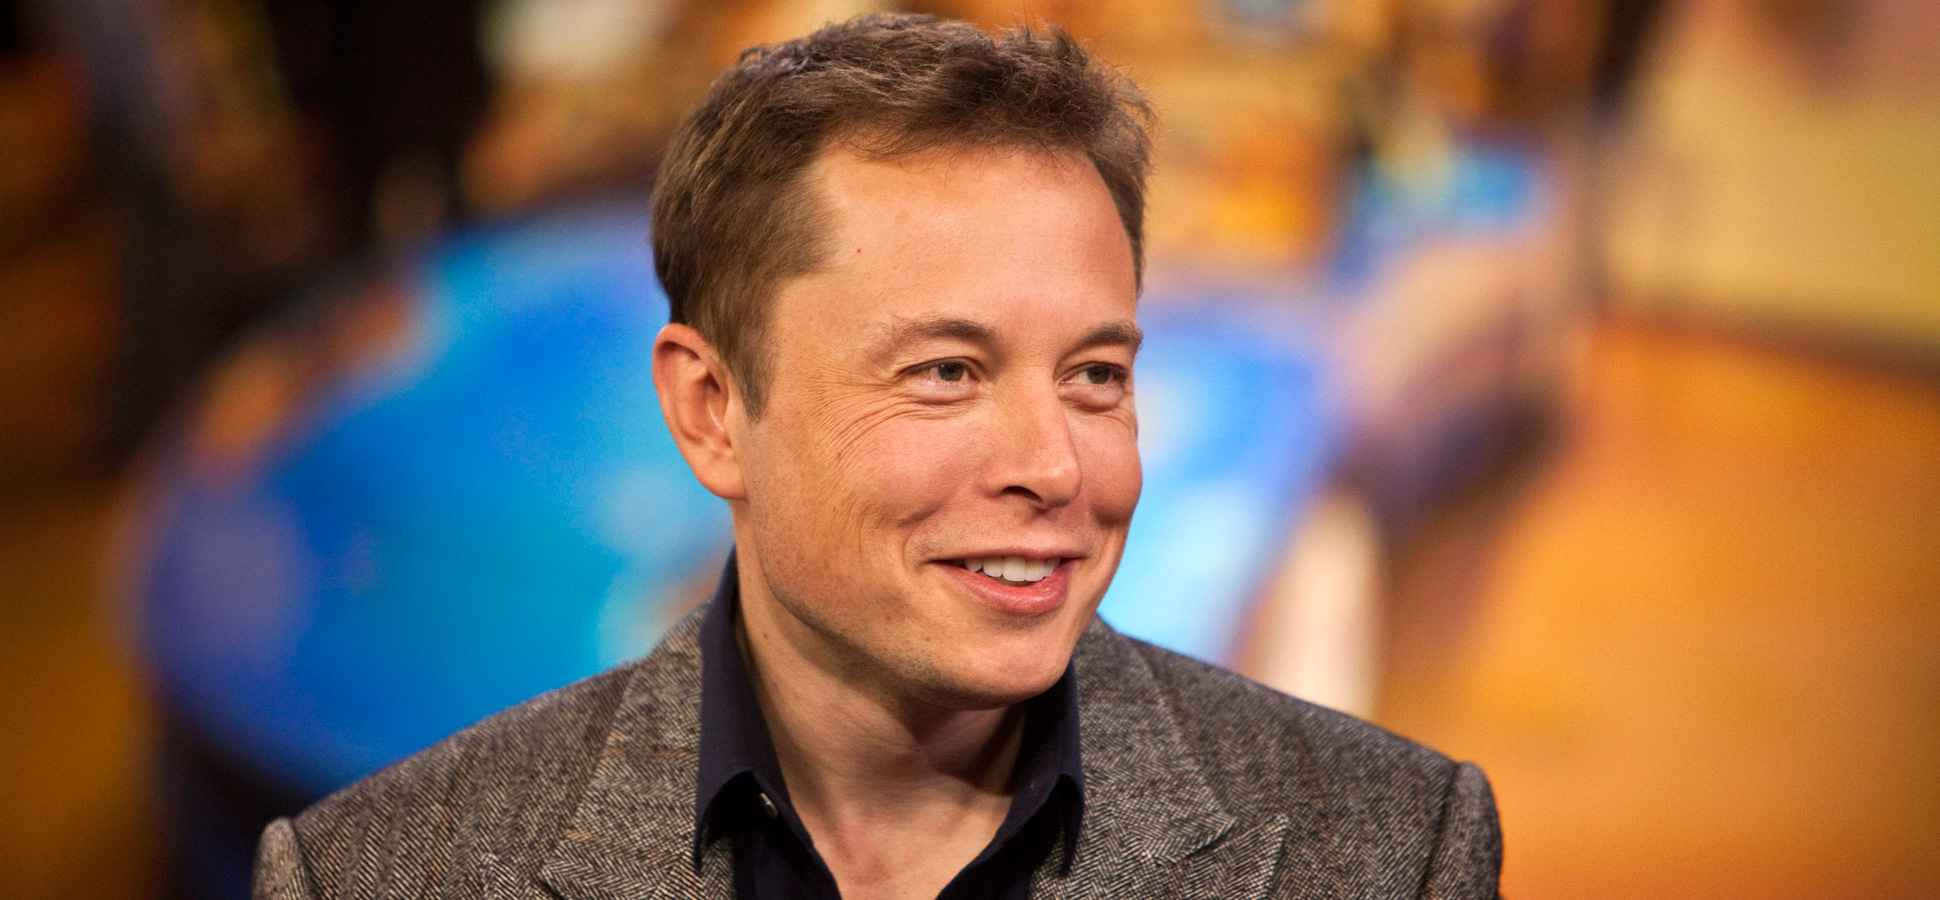 Elon Musk is About to Launch the Heaviest Rocket in Existence